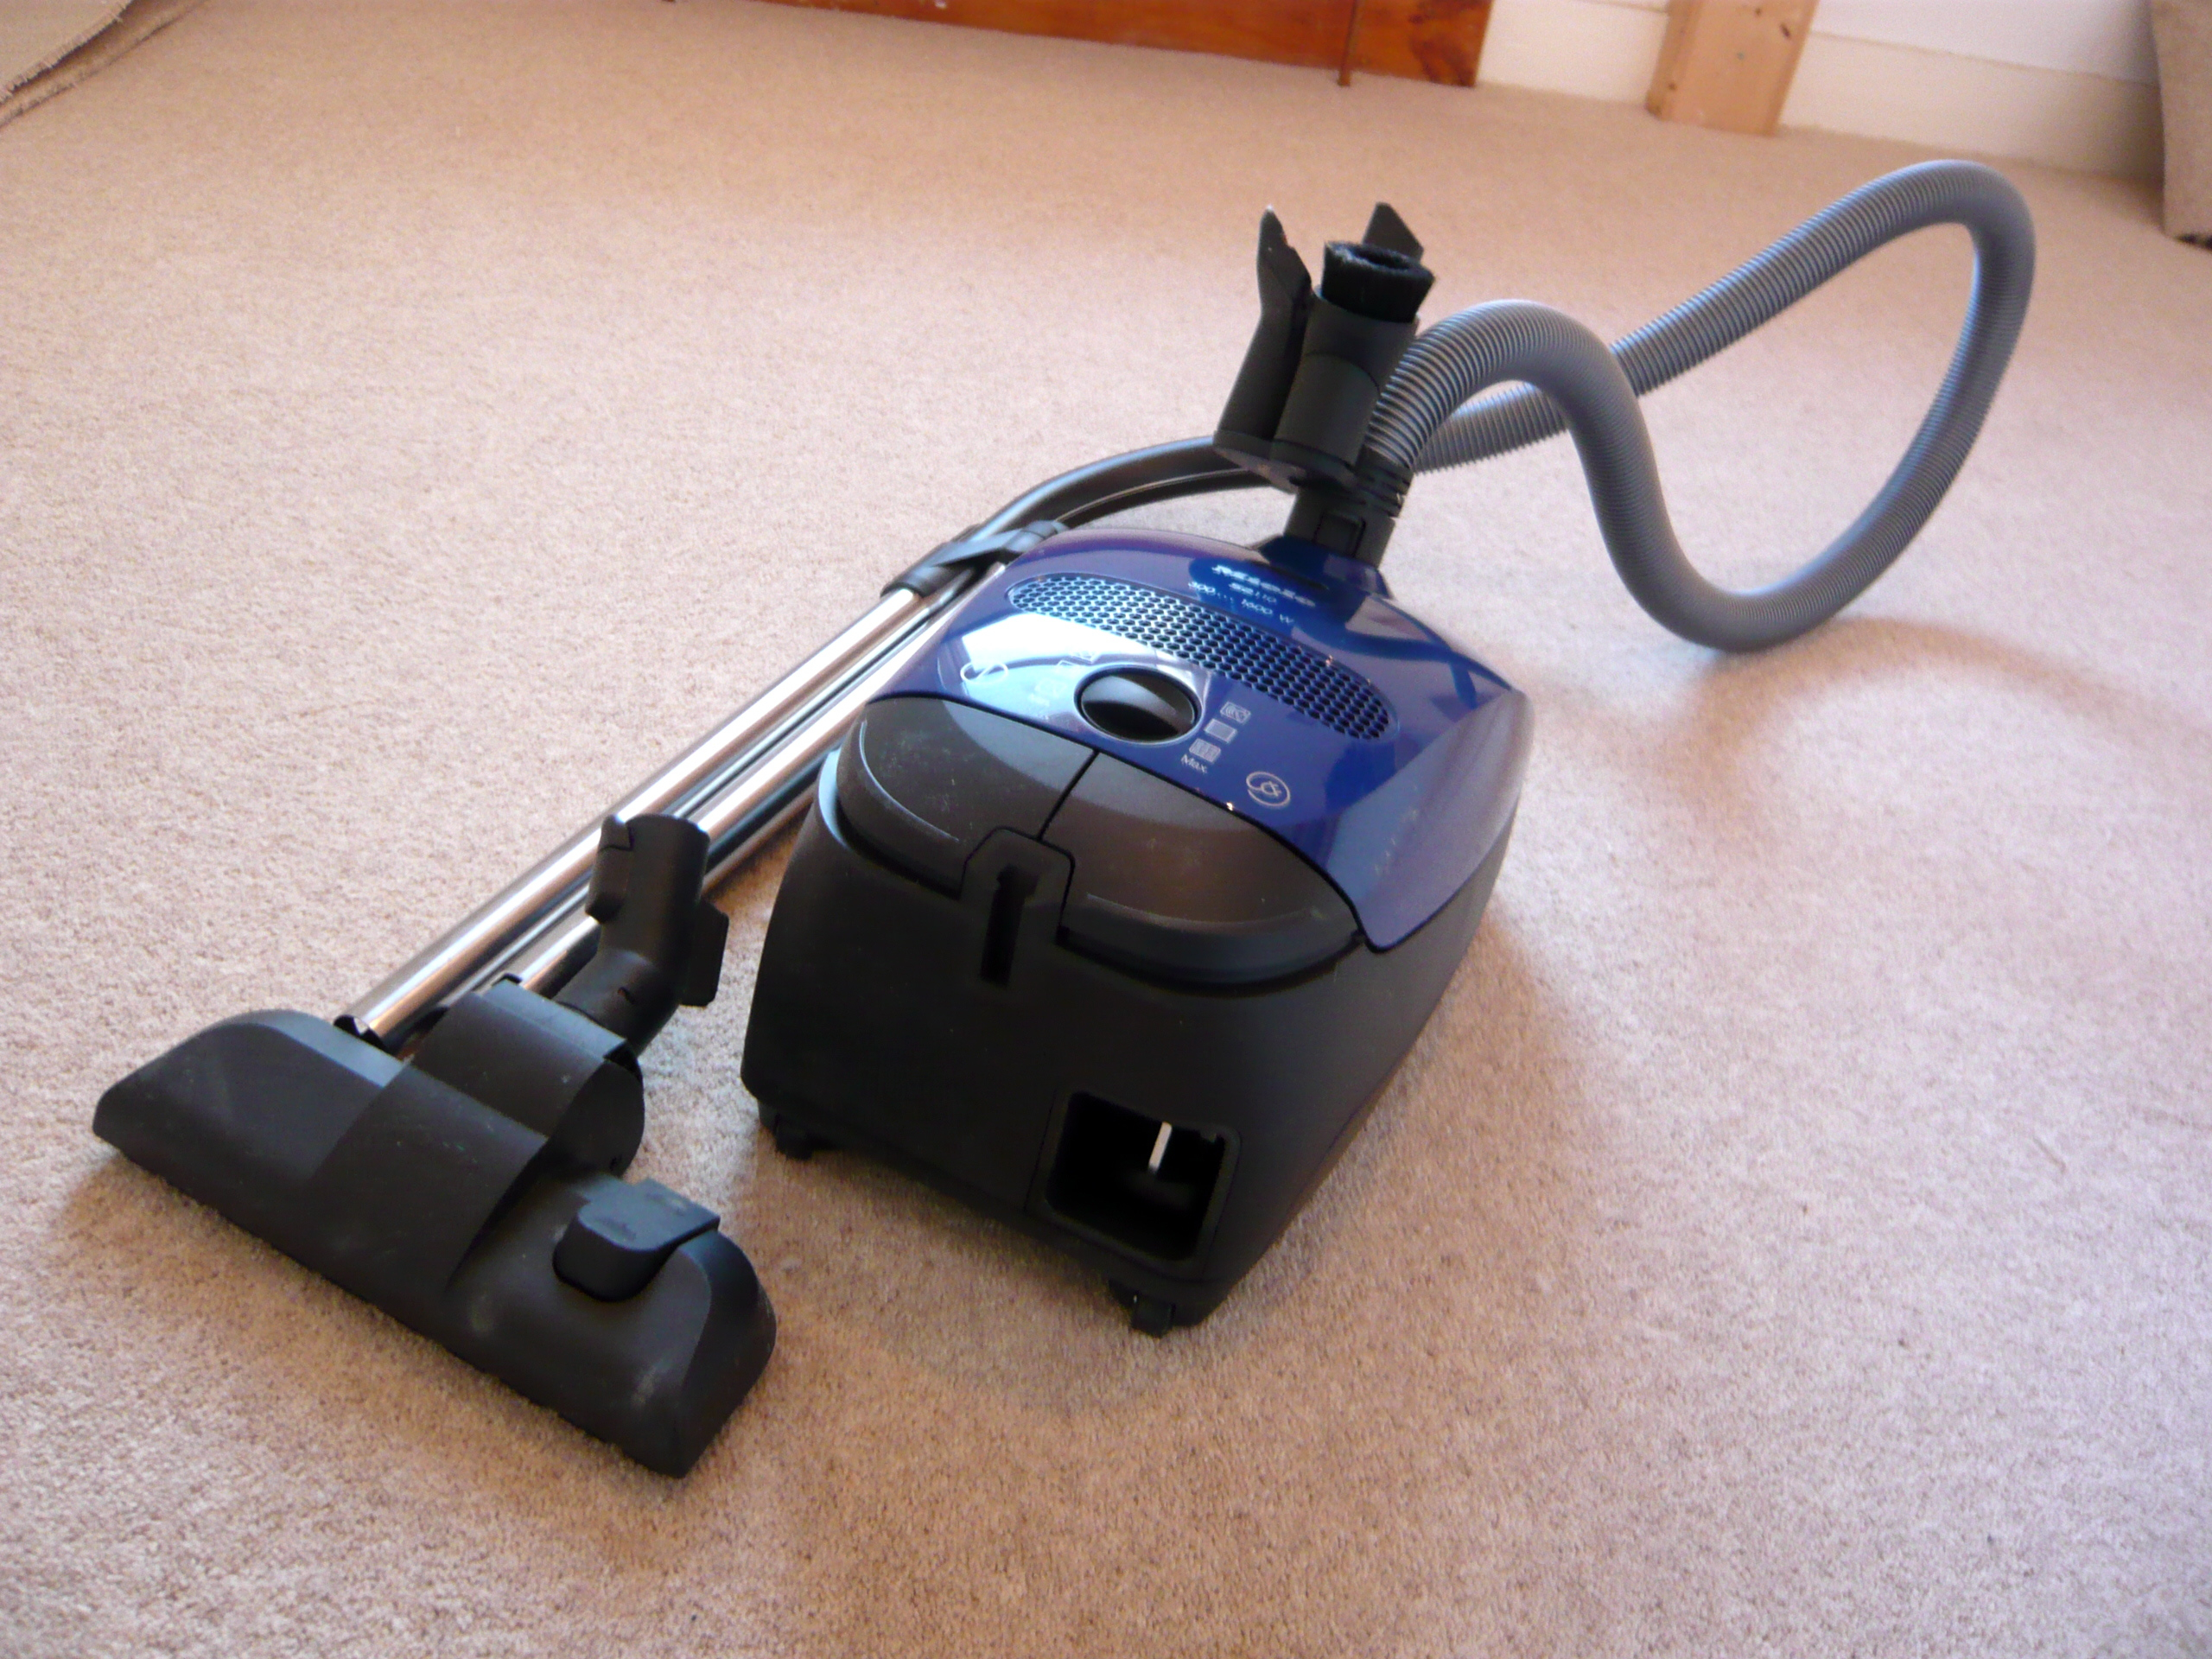 diy carpet cleaner. Choose The Proper Equipment. If You Want DIY Carpet Cleaning Diy Cleaner U